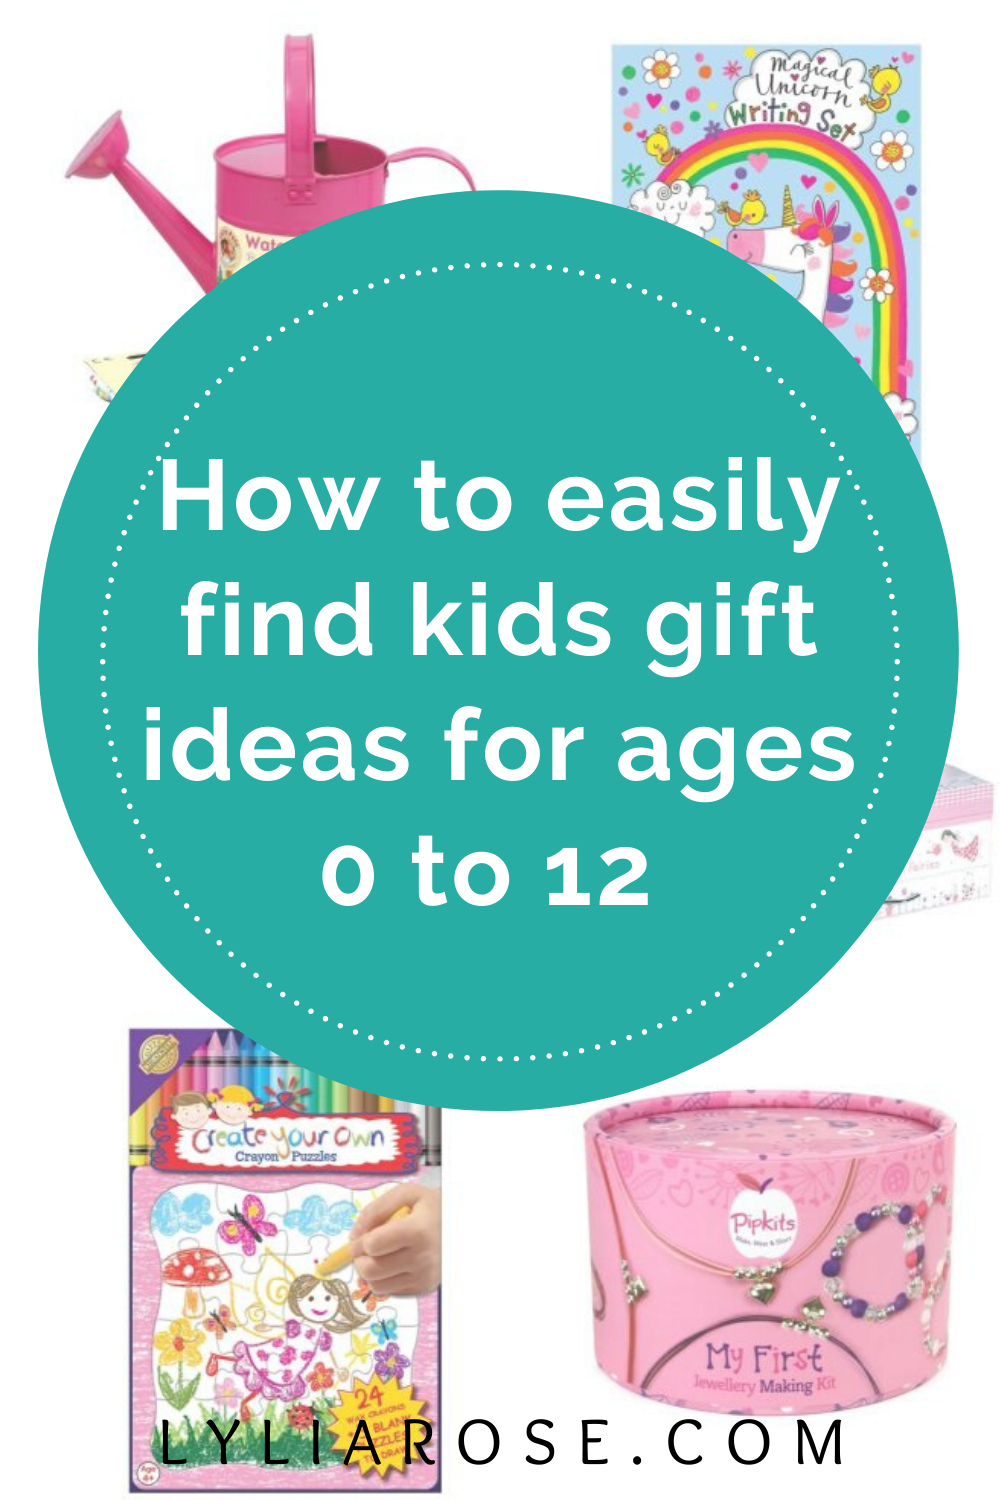 How to easily find kids gift ideas for ages 0 to 12